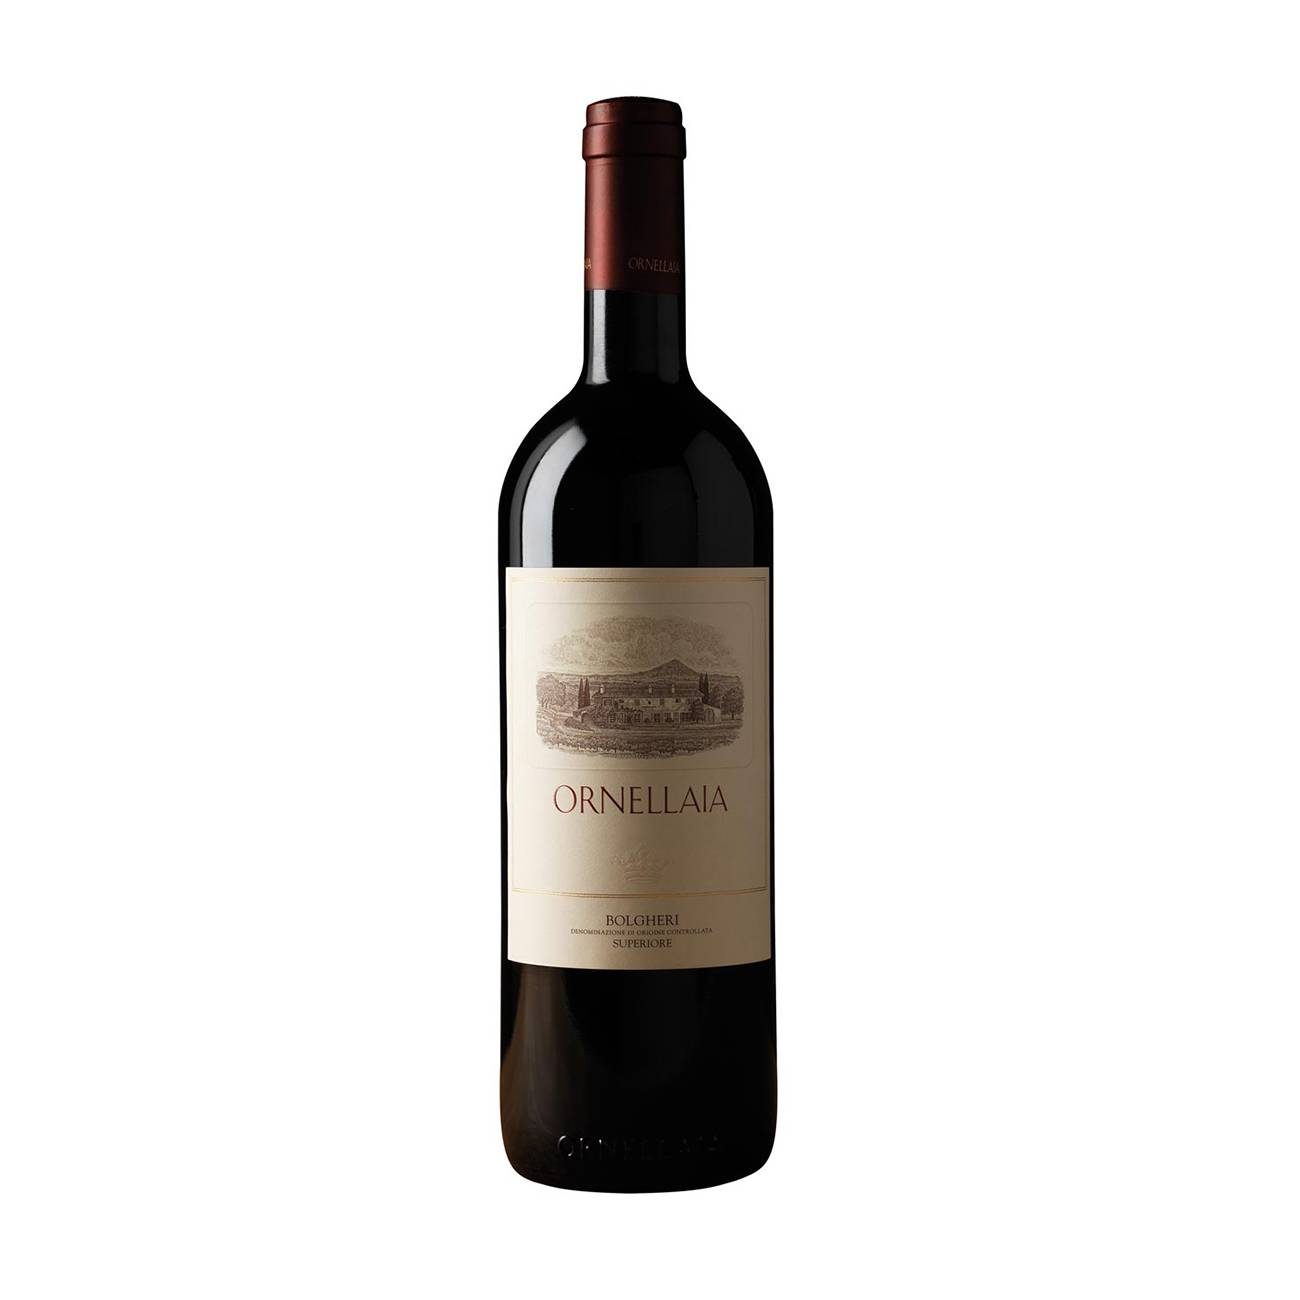 BOLGHERI SUPERIORE 750ml